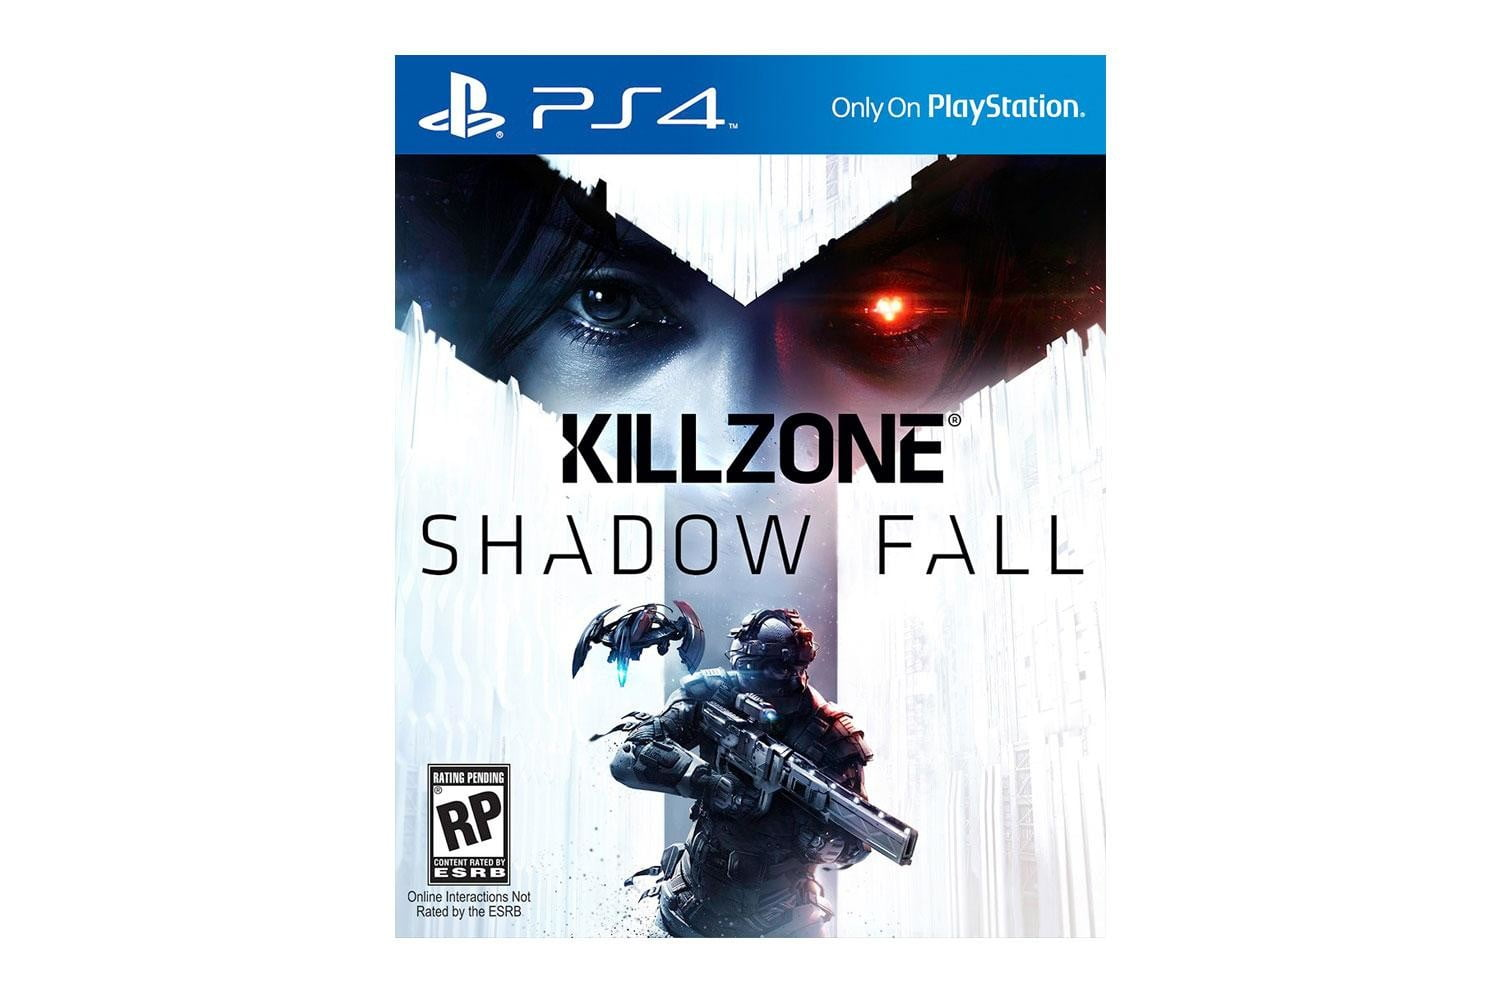 Killzone-Shadow-Fall-cover-art